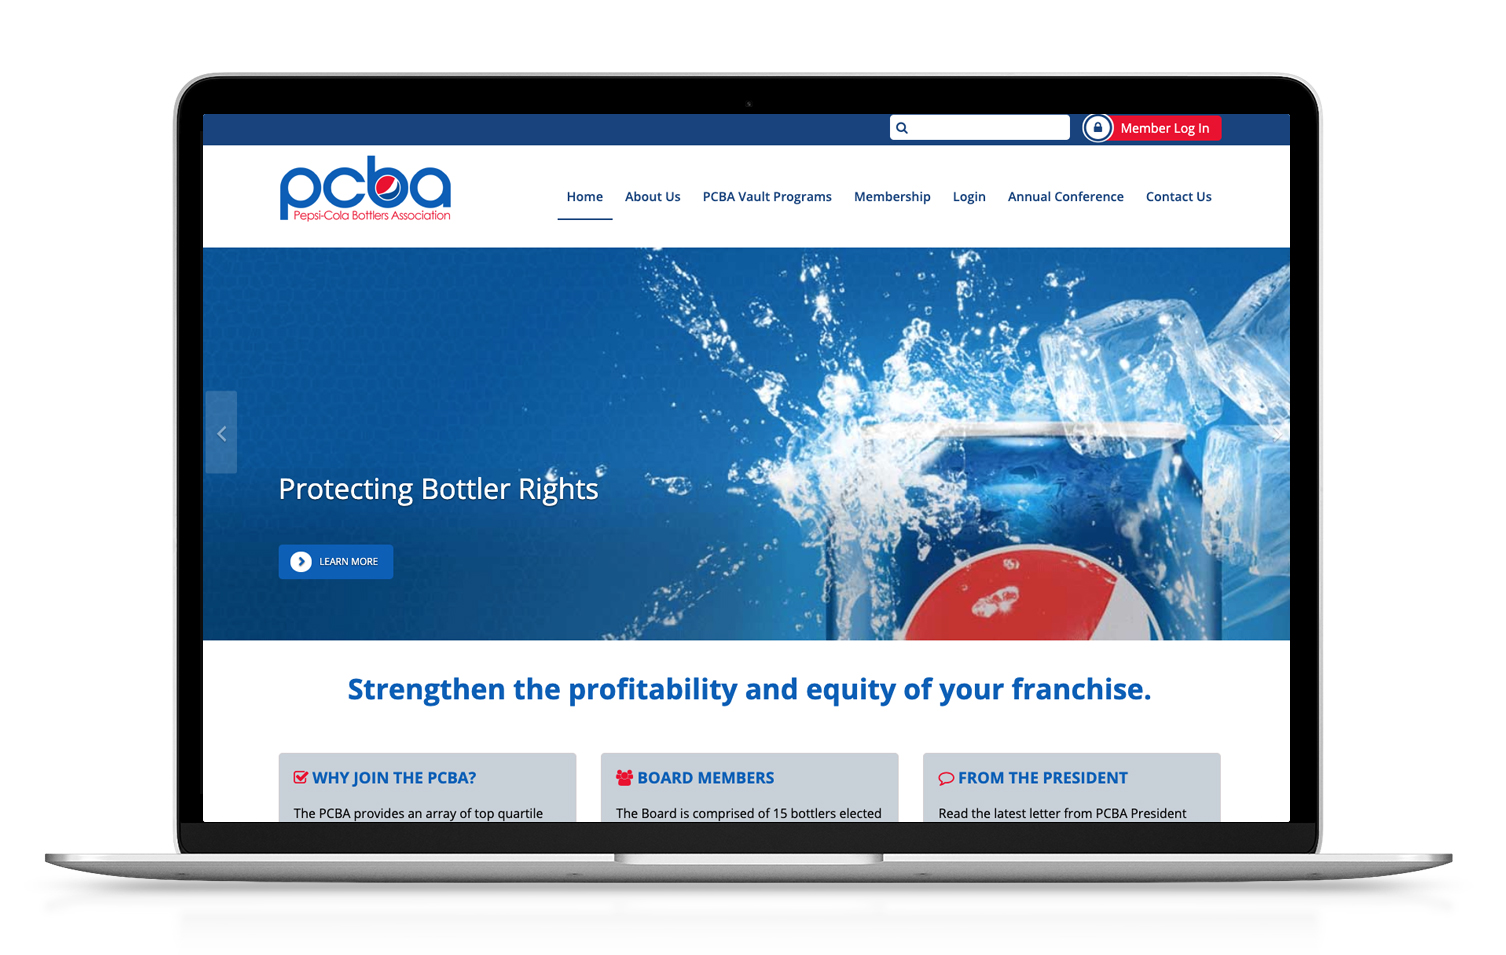 Pepsi-Cola Bottler's Association